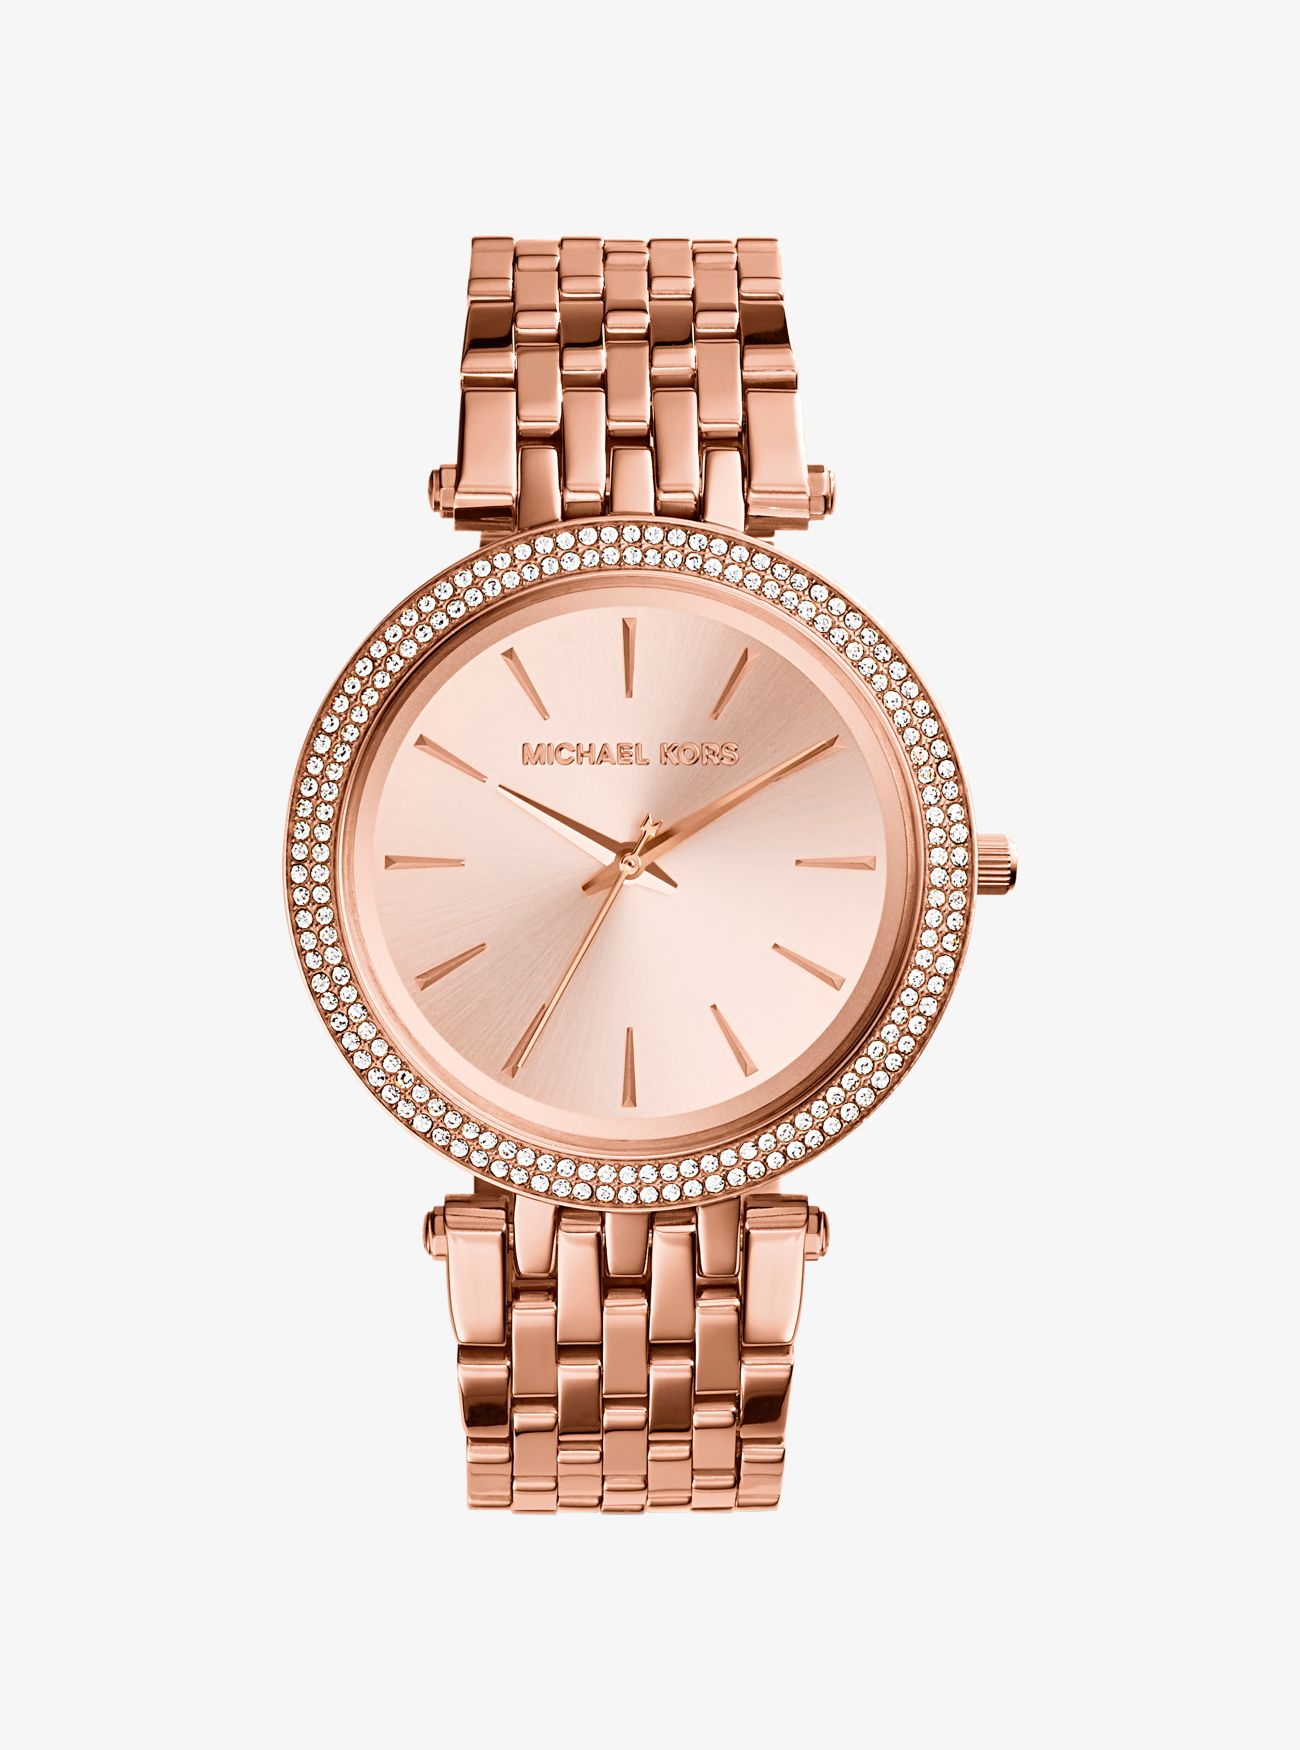 dp tone steel stainless s color watch gold com model classic rose guess amazon watches women bracelet